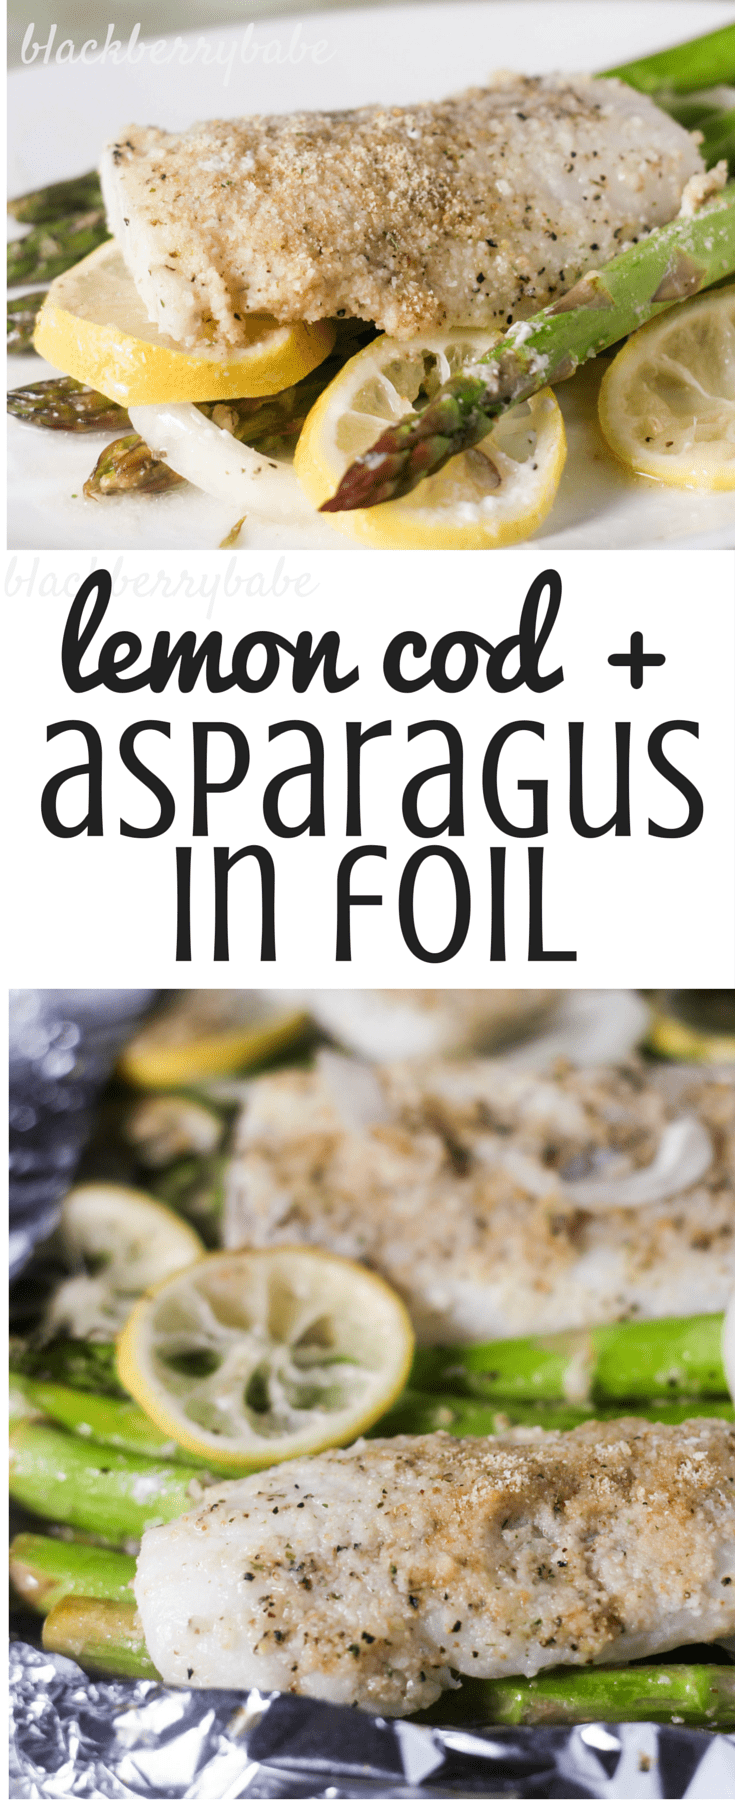 Lemon Cod With Asparagus In Foil Easy And Very Healthy Foil Dinner  #nourishingeveryday #